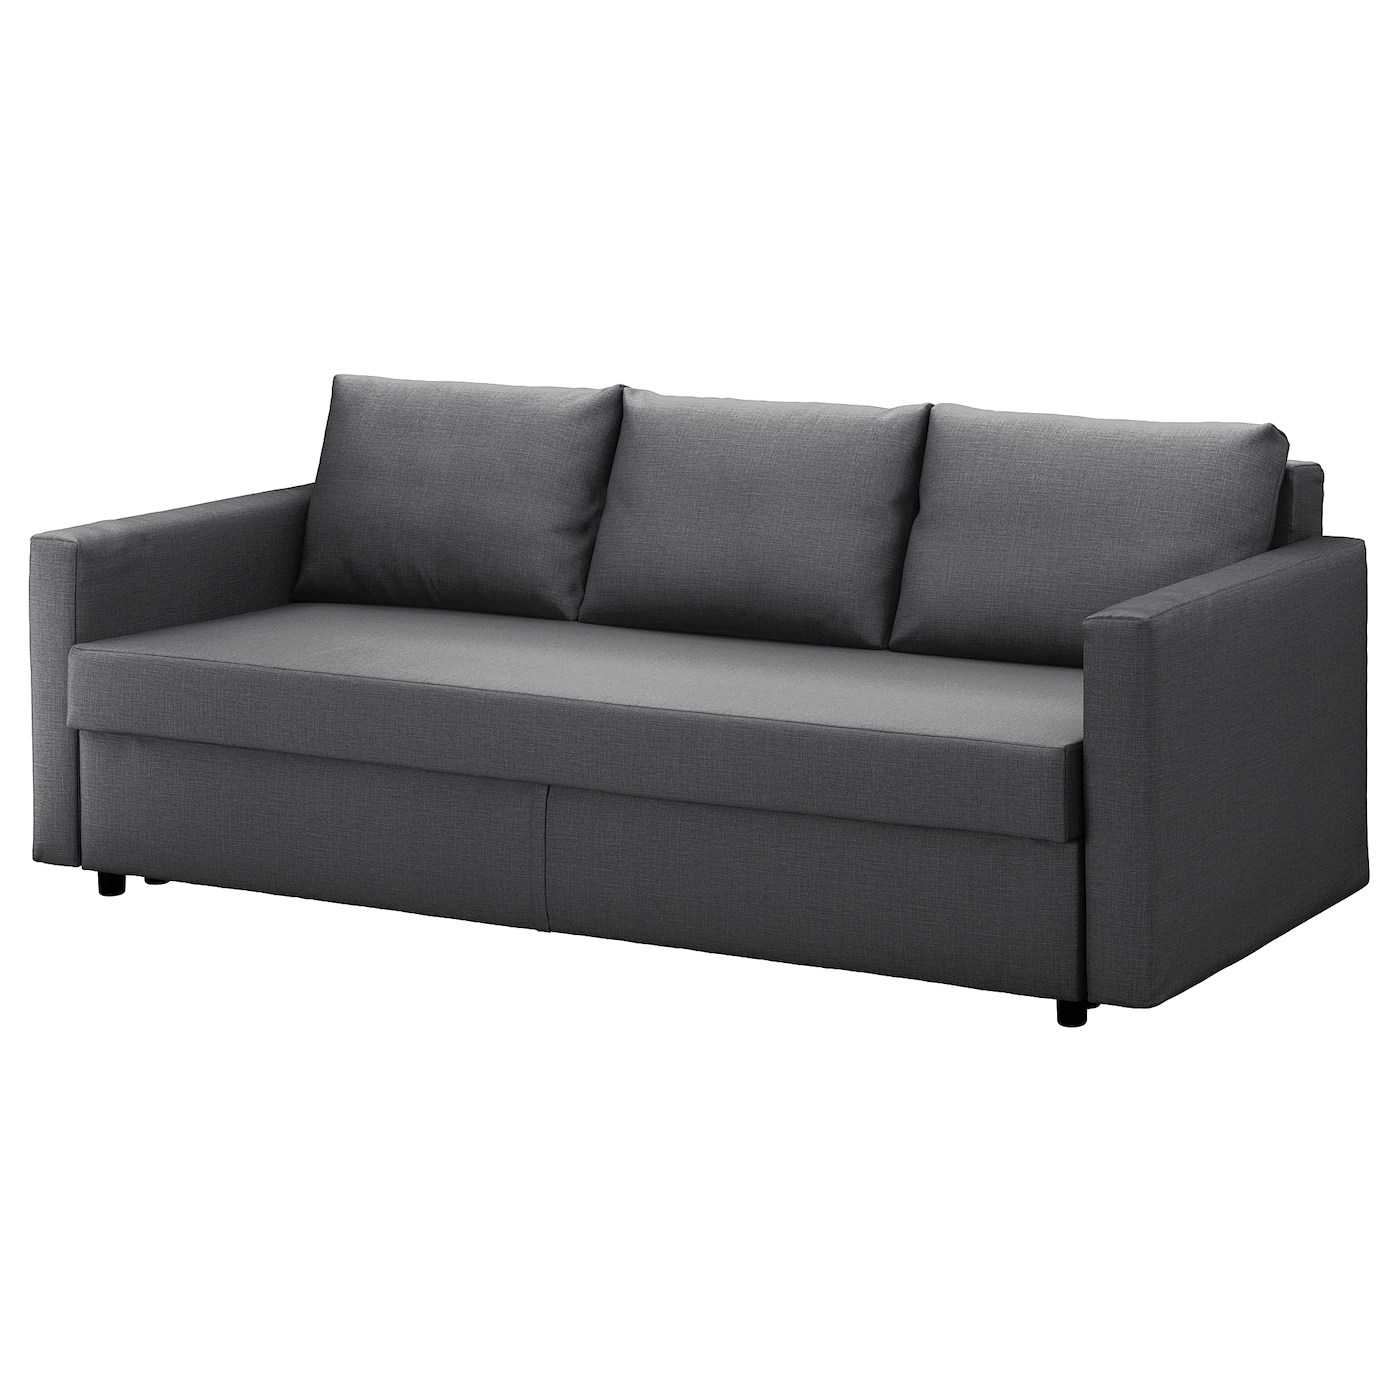 Bettsofa Ikea Friheten Friheten Three Seat Sofa Bed Skiftebo Dark Grey